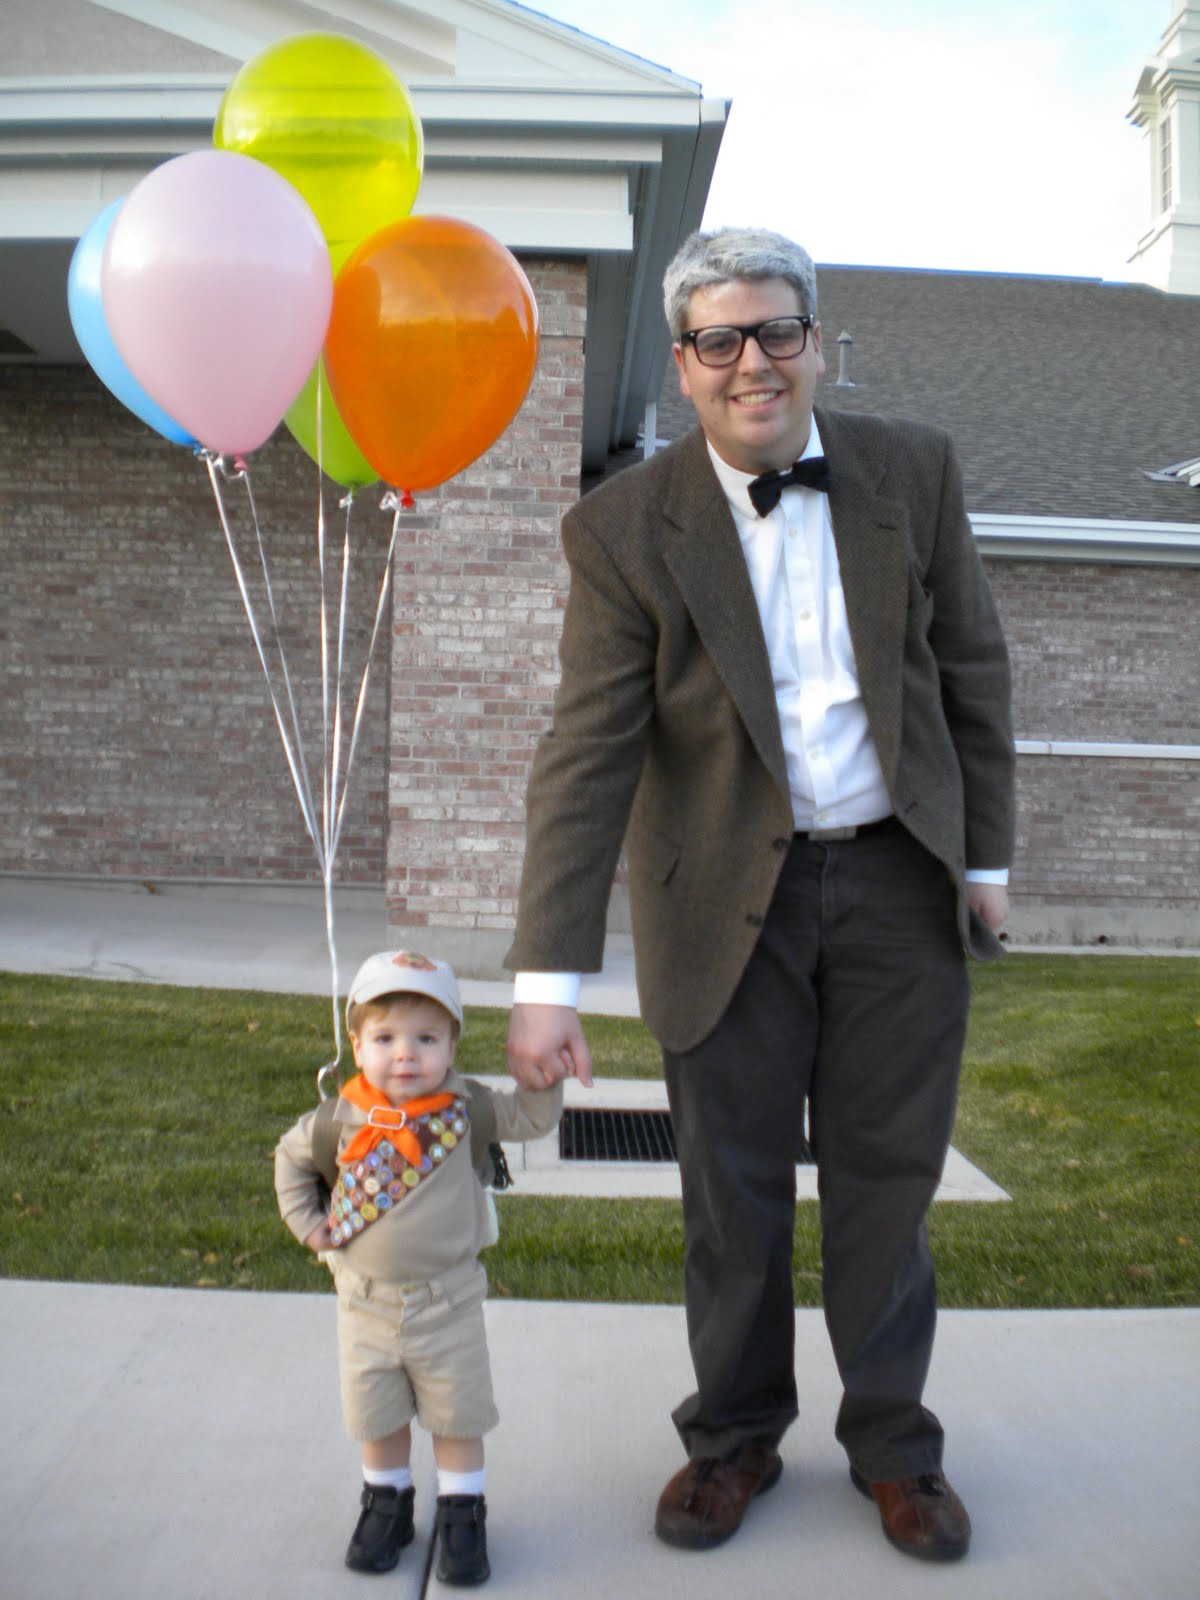 Favorite Halloween Costume Ideas for Pairs: The Boy and Old Man from Up | Oh Lovely Day